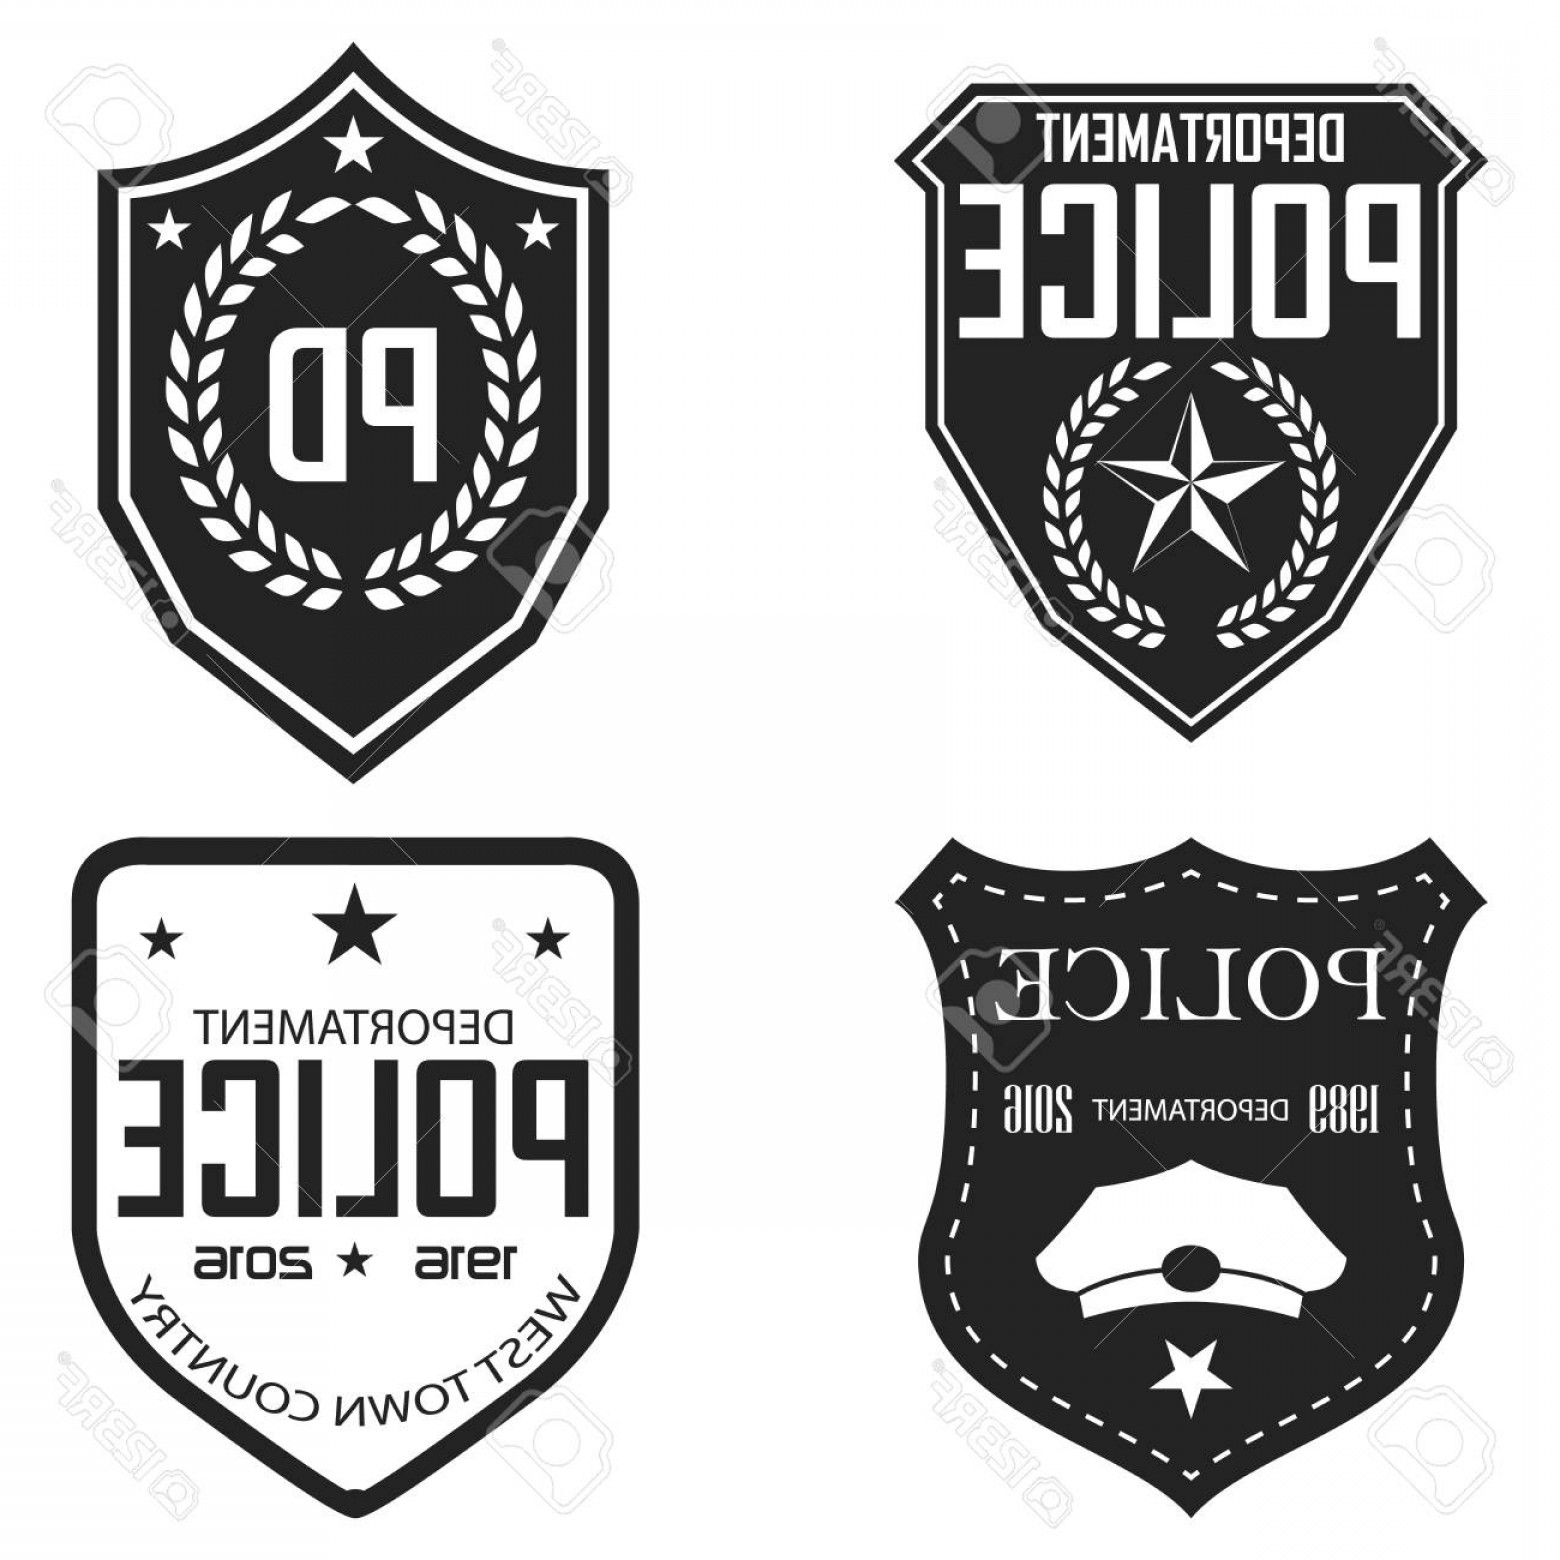 Law Enforcement Badges Vector: Photostock Vector Police Badges And Emblems Monochrome Vector Illustration Retro Style